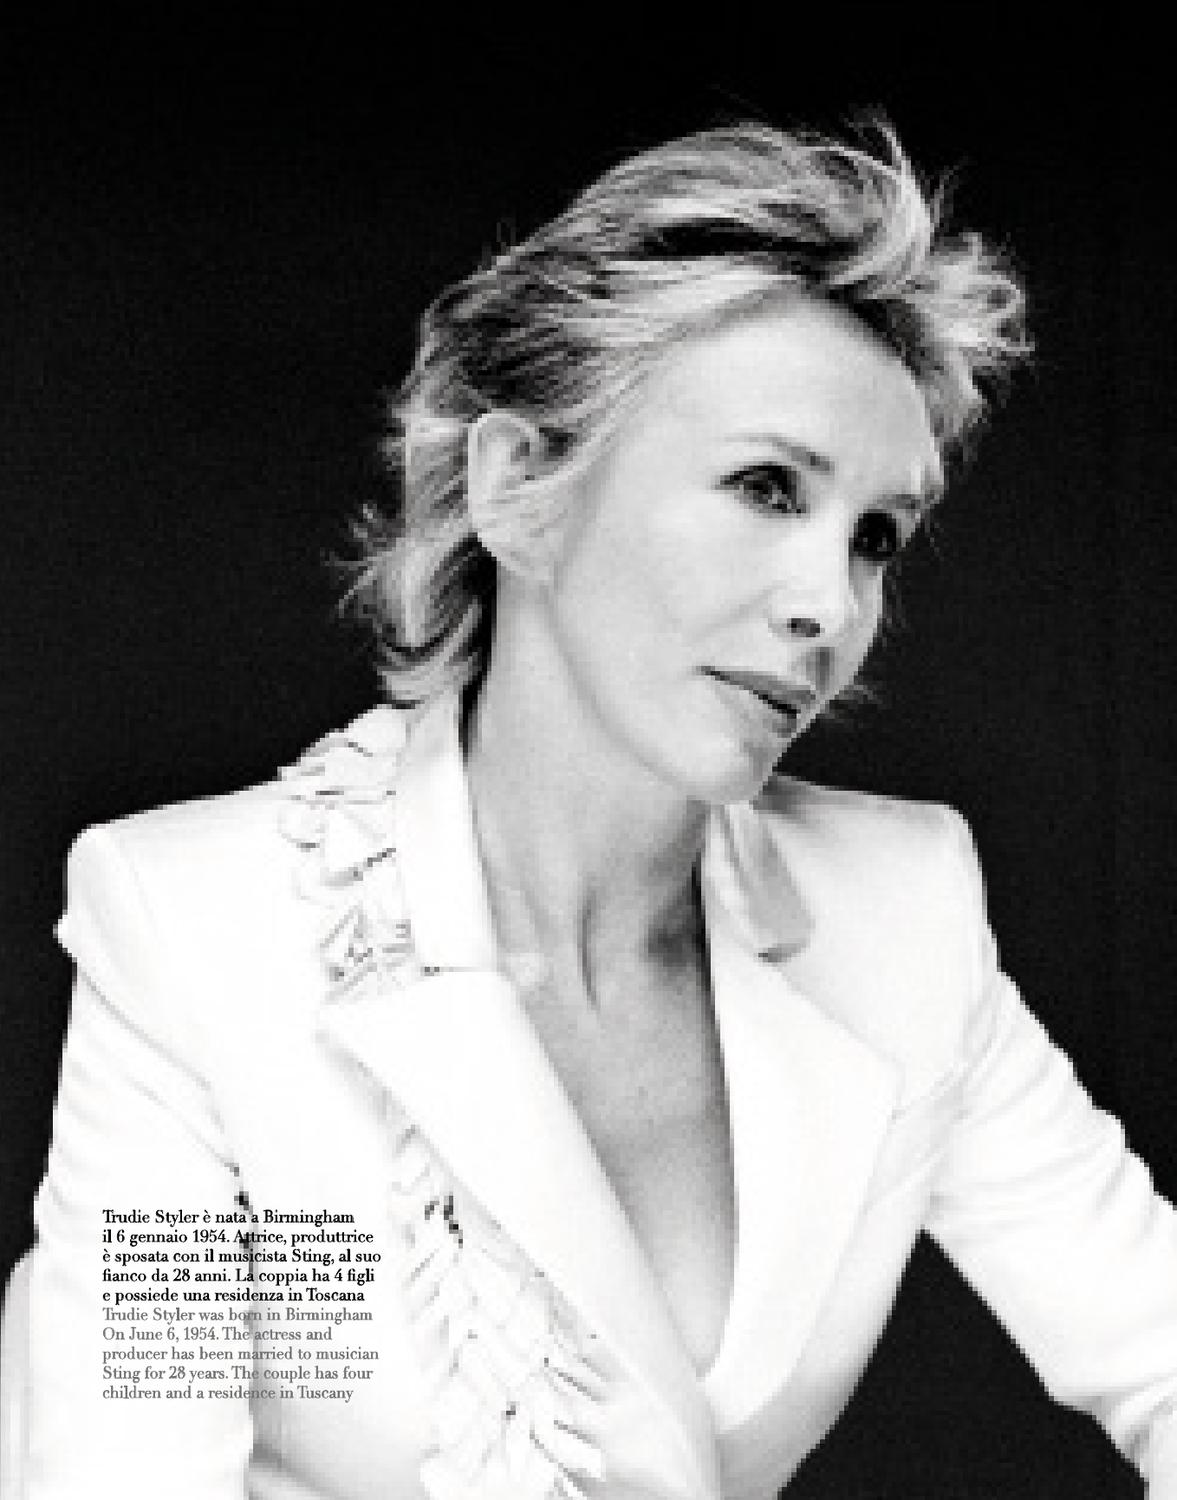 Trudie Styler (born 1954) Trudie Styler (born 1954) new photo